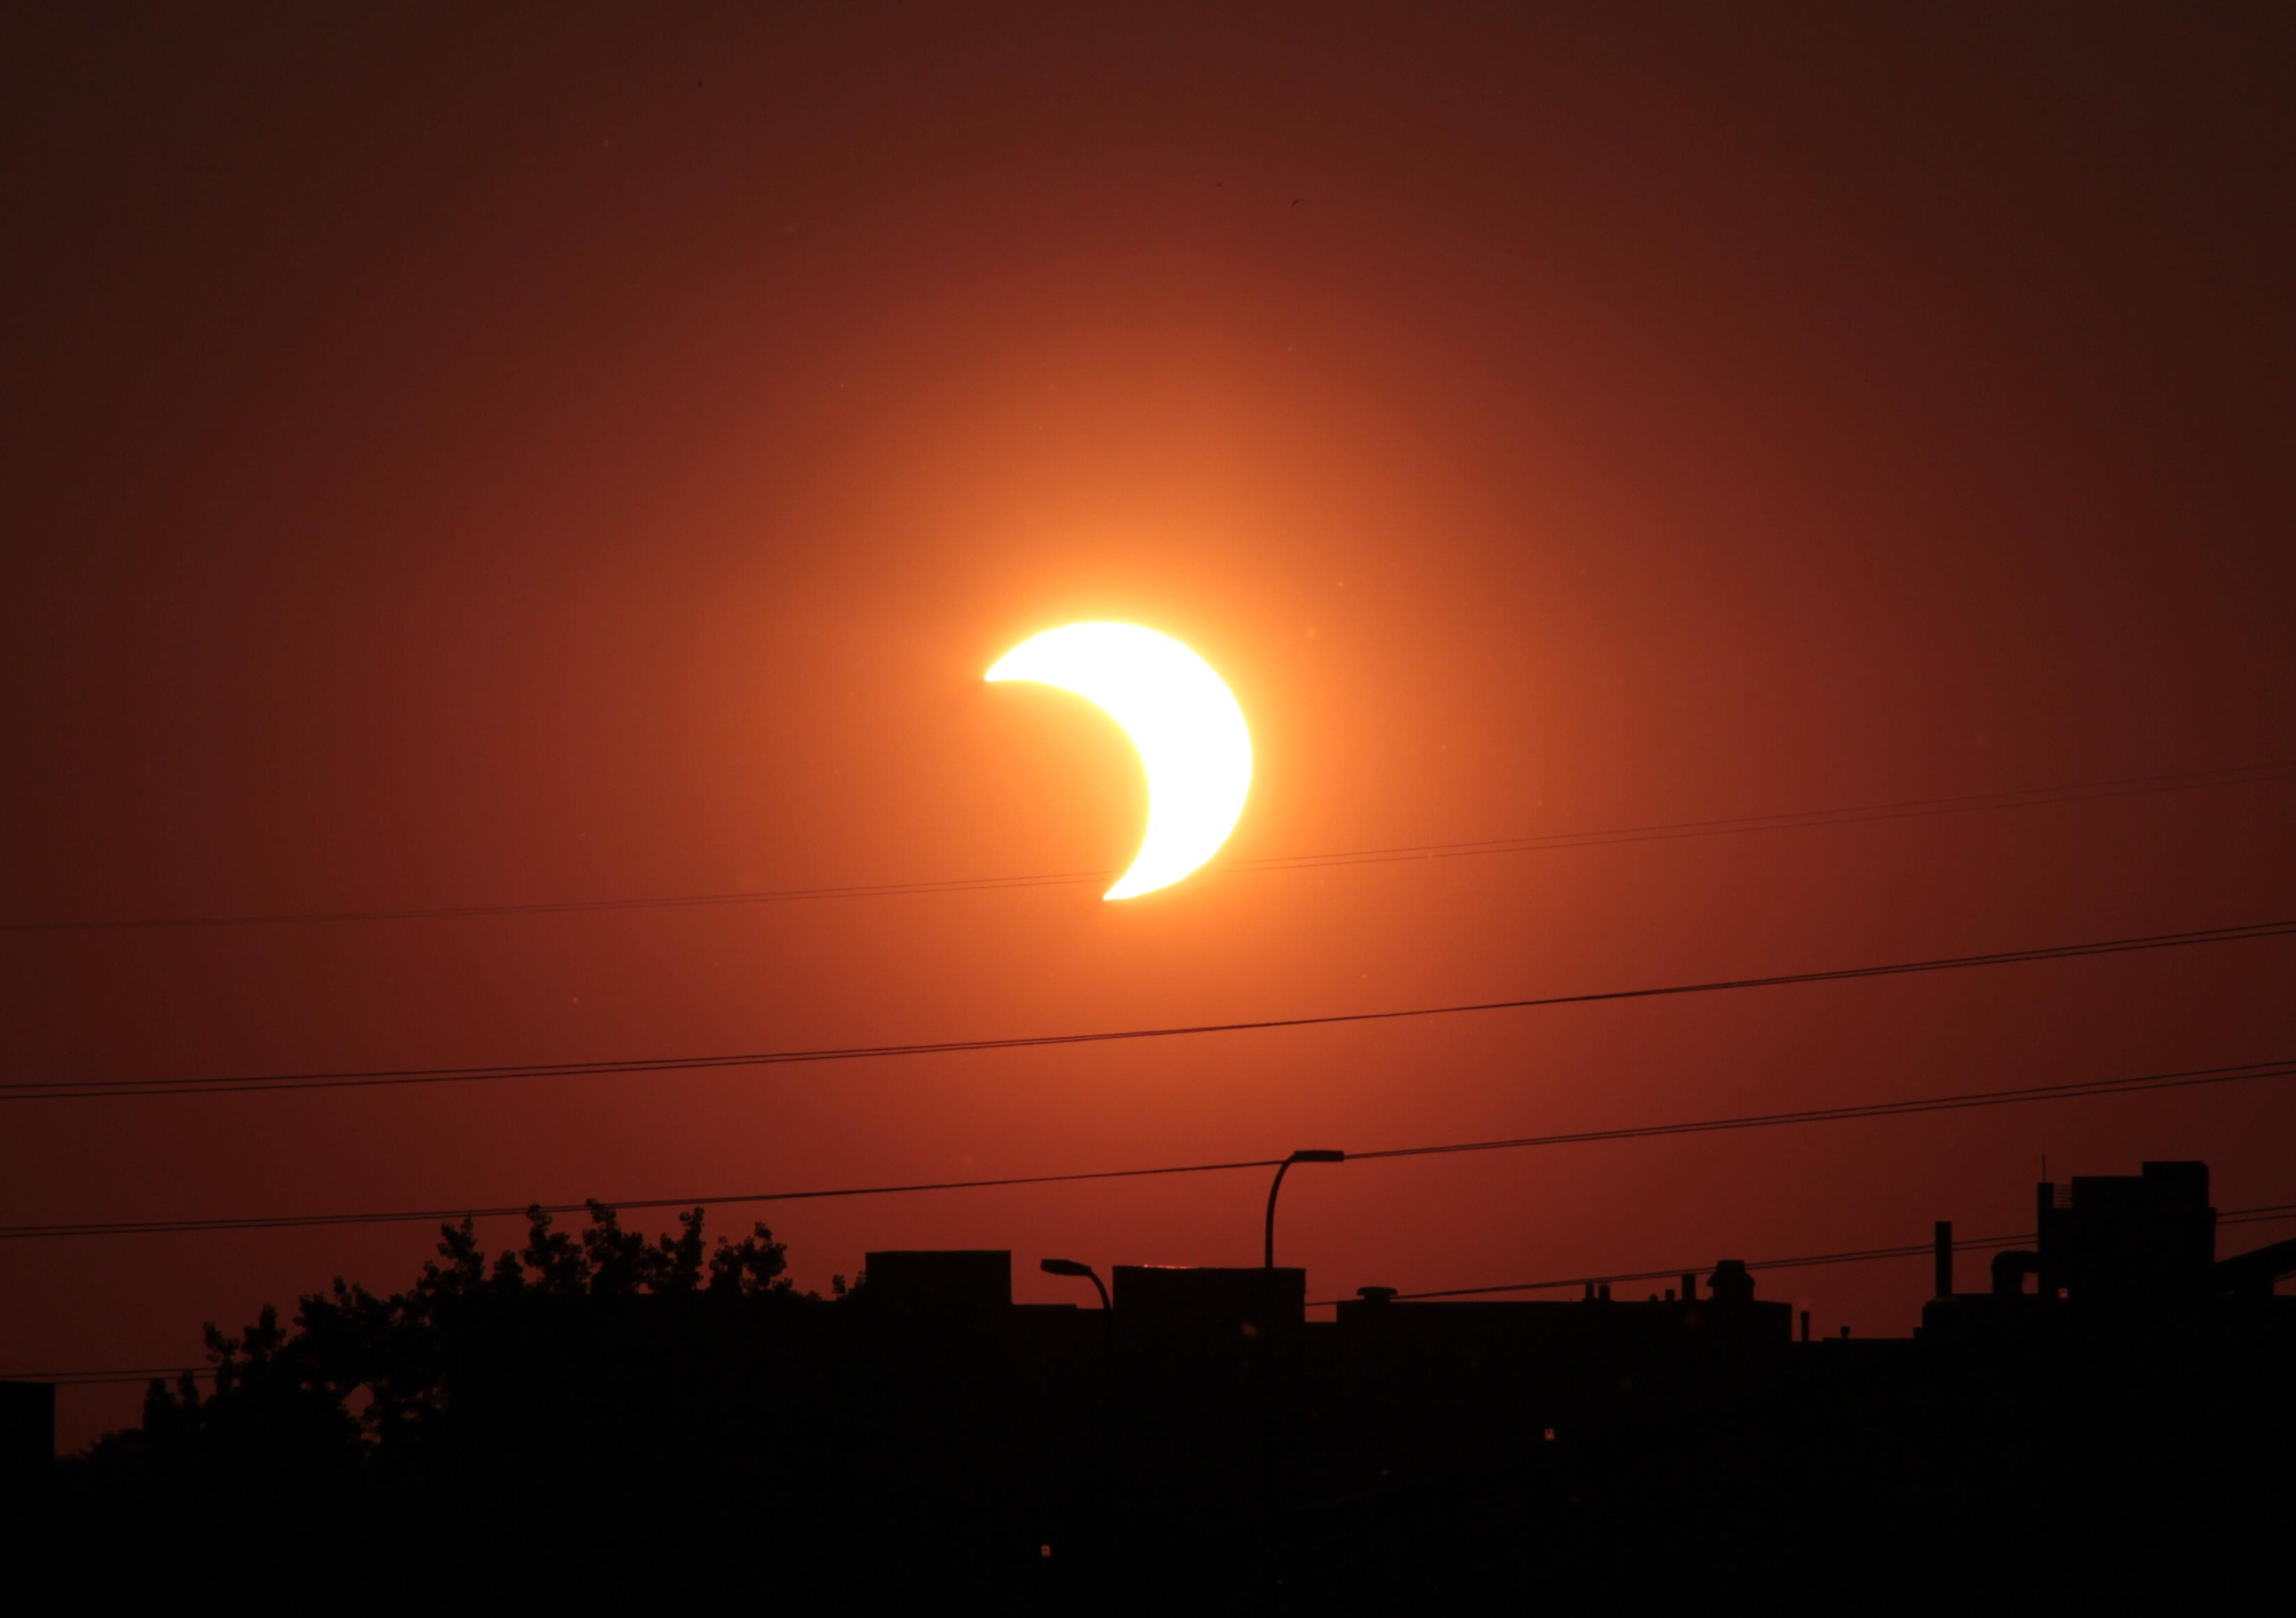 An example of a partial solar eclipse. The eclipse on the 23rd could possibly look like this.